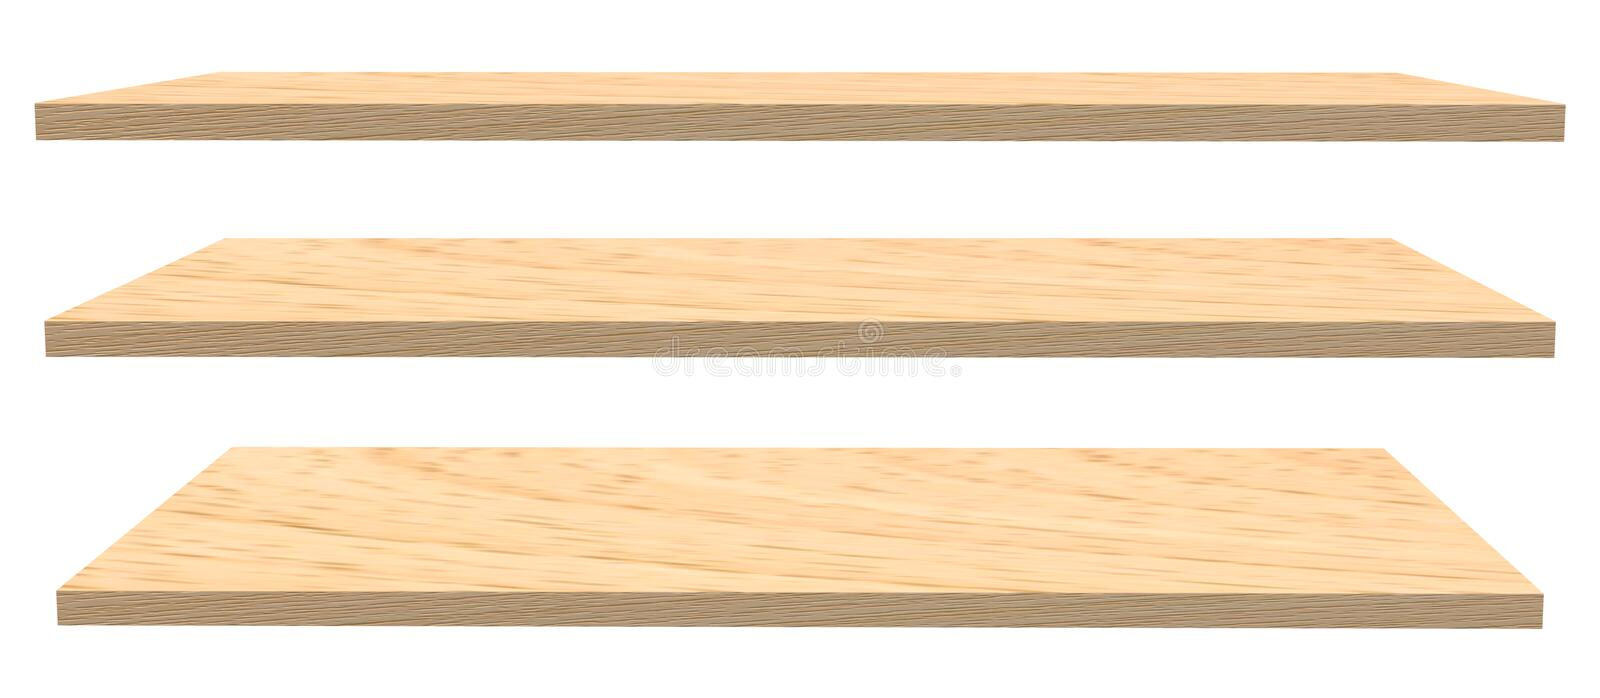 Wooden shelves isolated on white royalty free stock photography